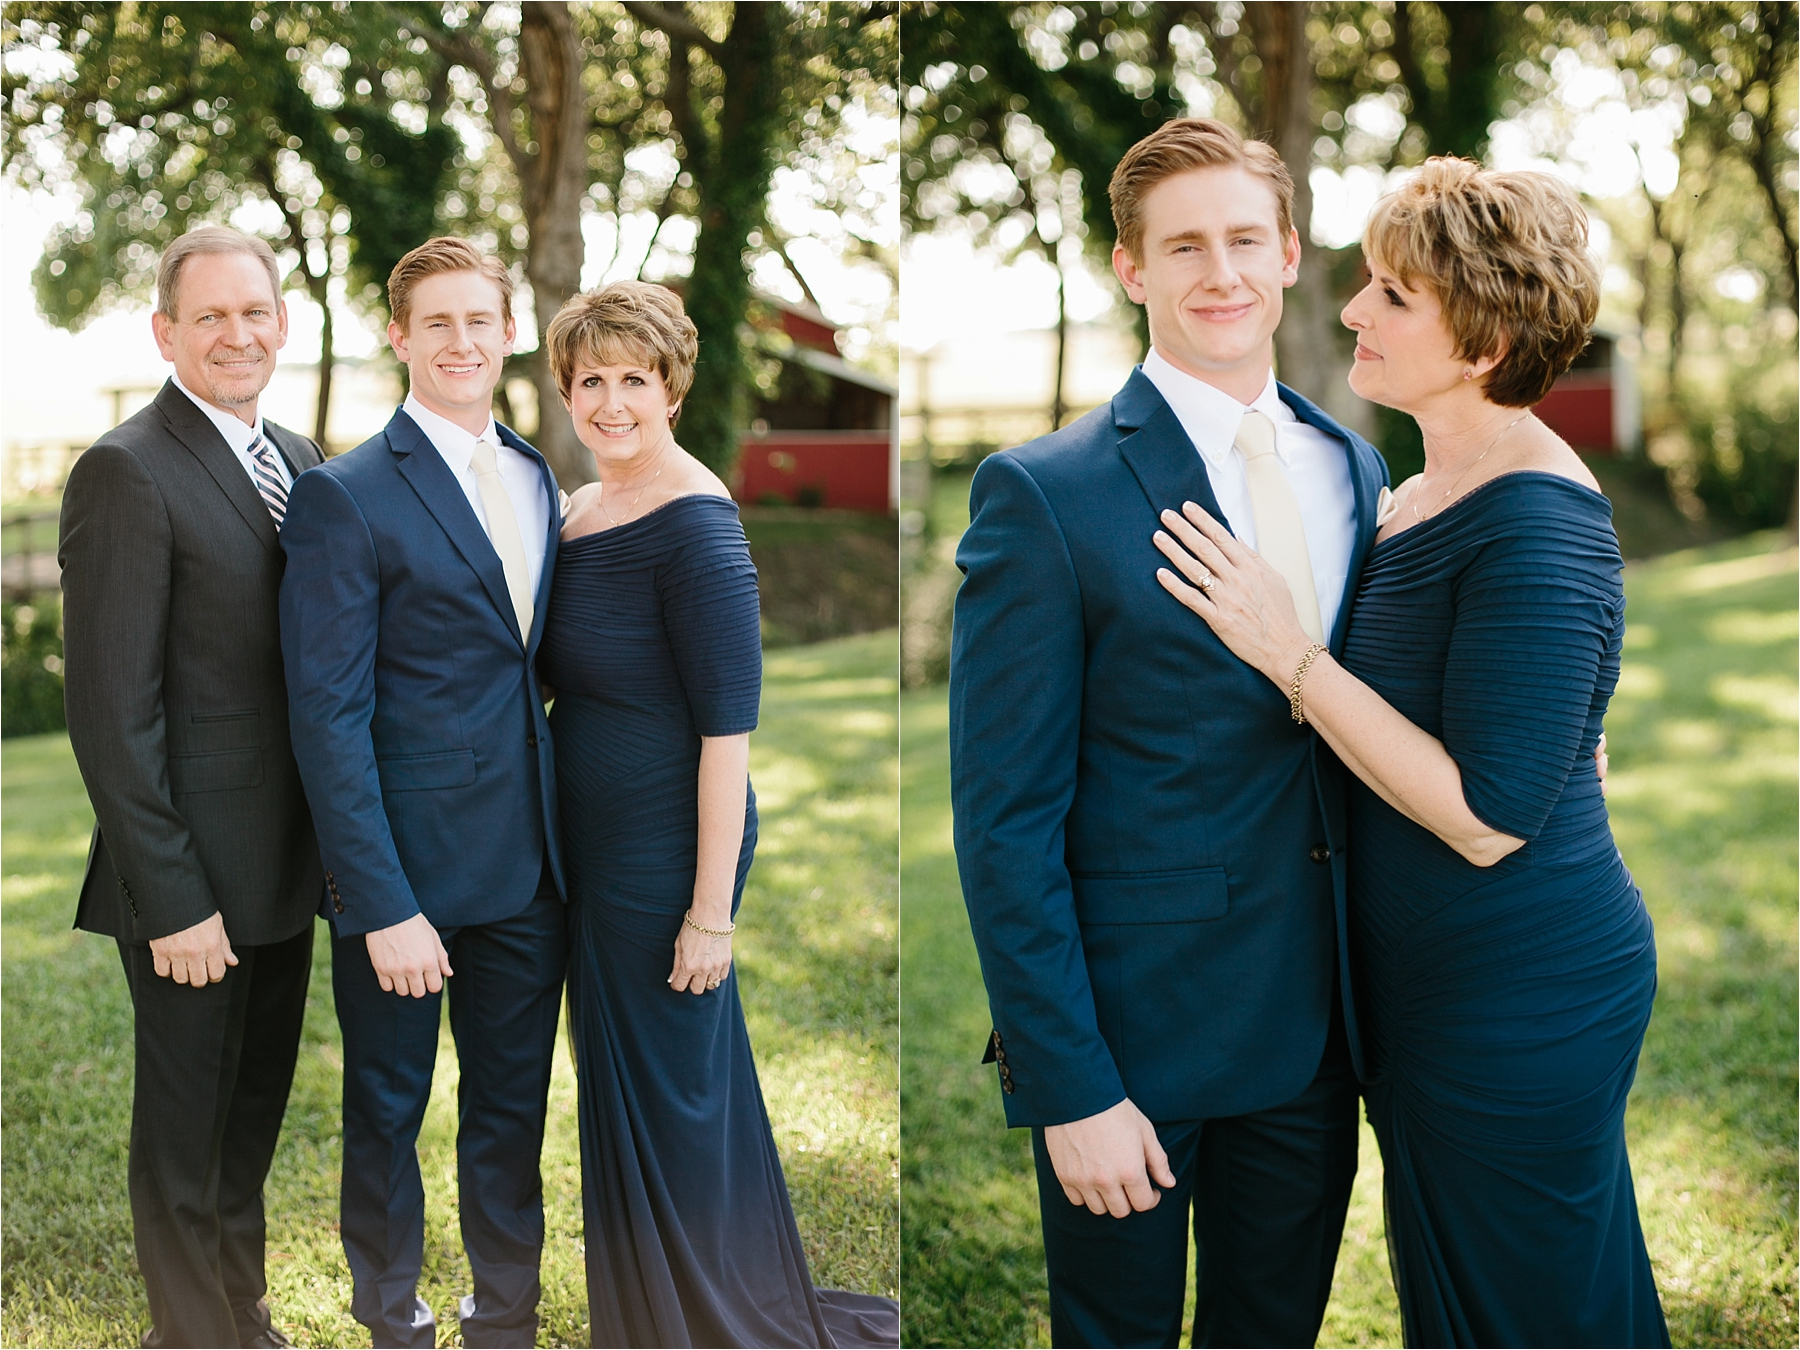 Tiffany Josh An Elegant Laid Back Outdoor Wedding At Willow Creek Ranch In